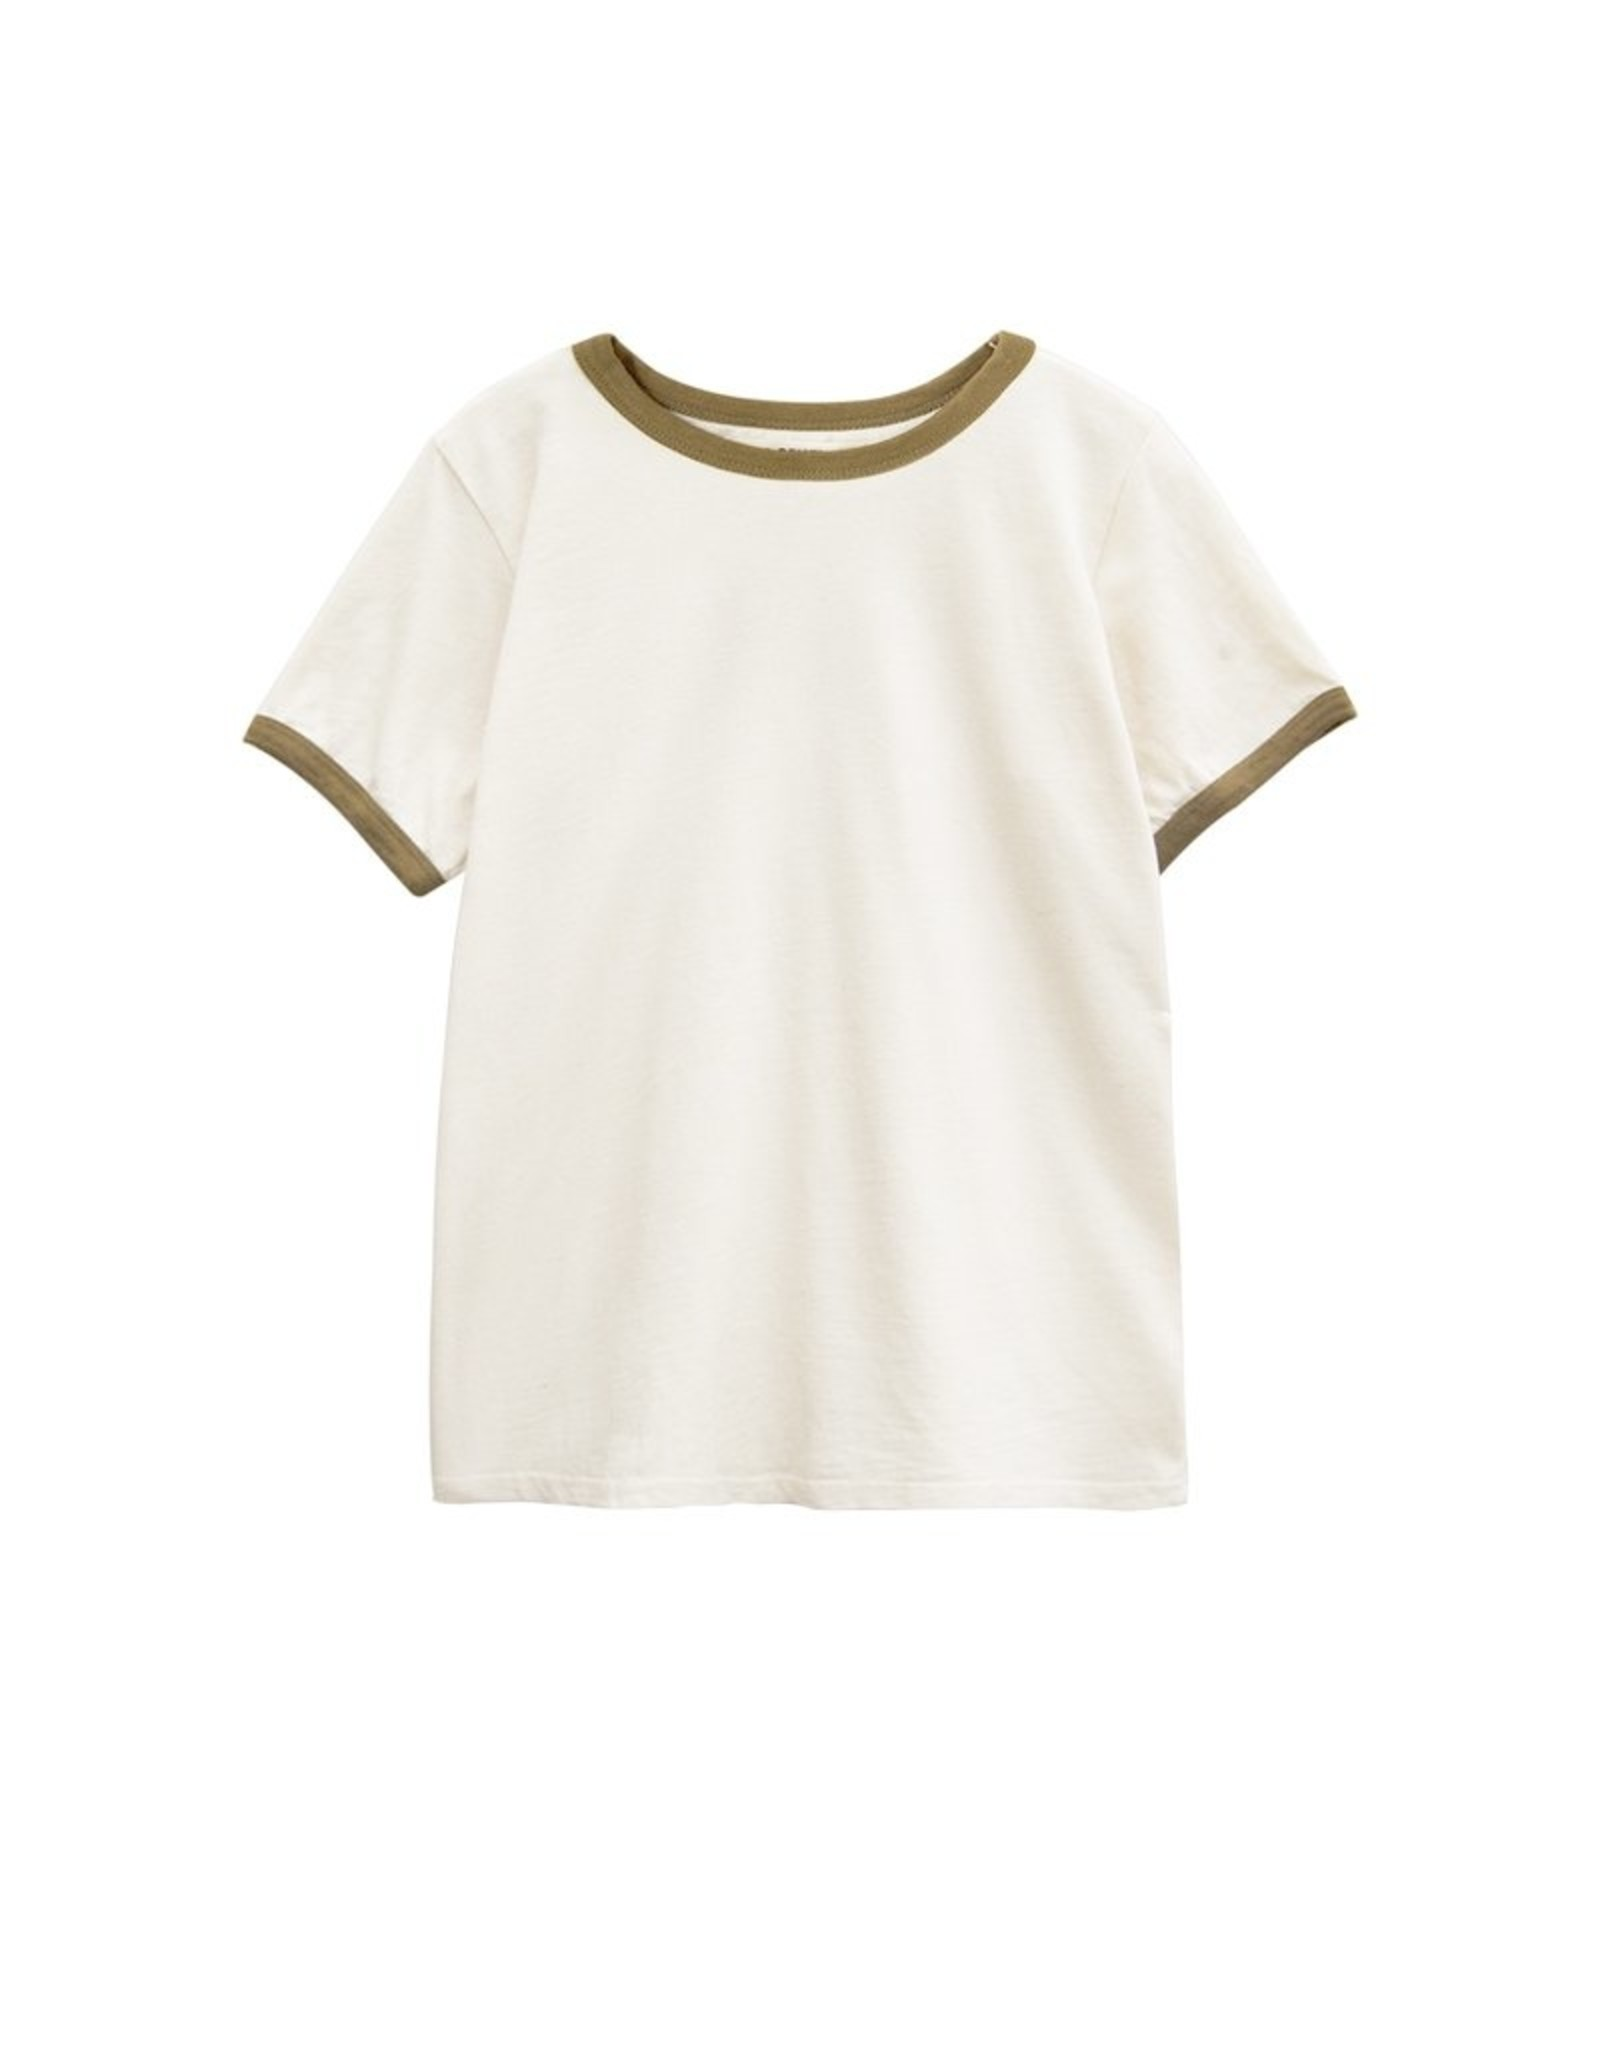 Go Gently Nation Vintage tee